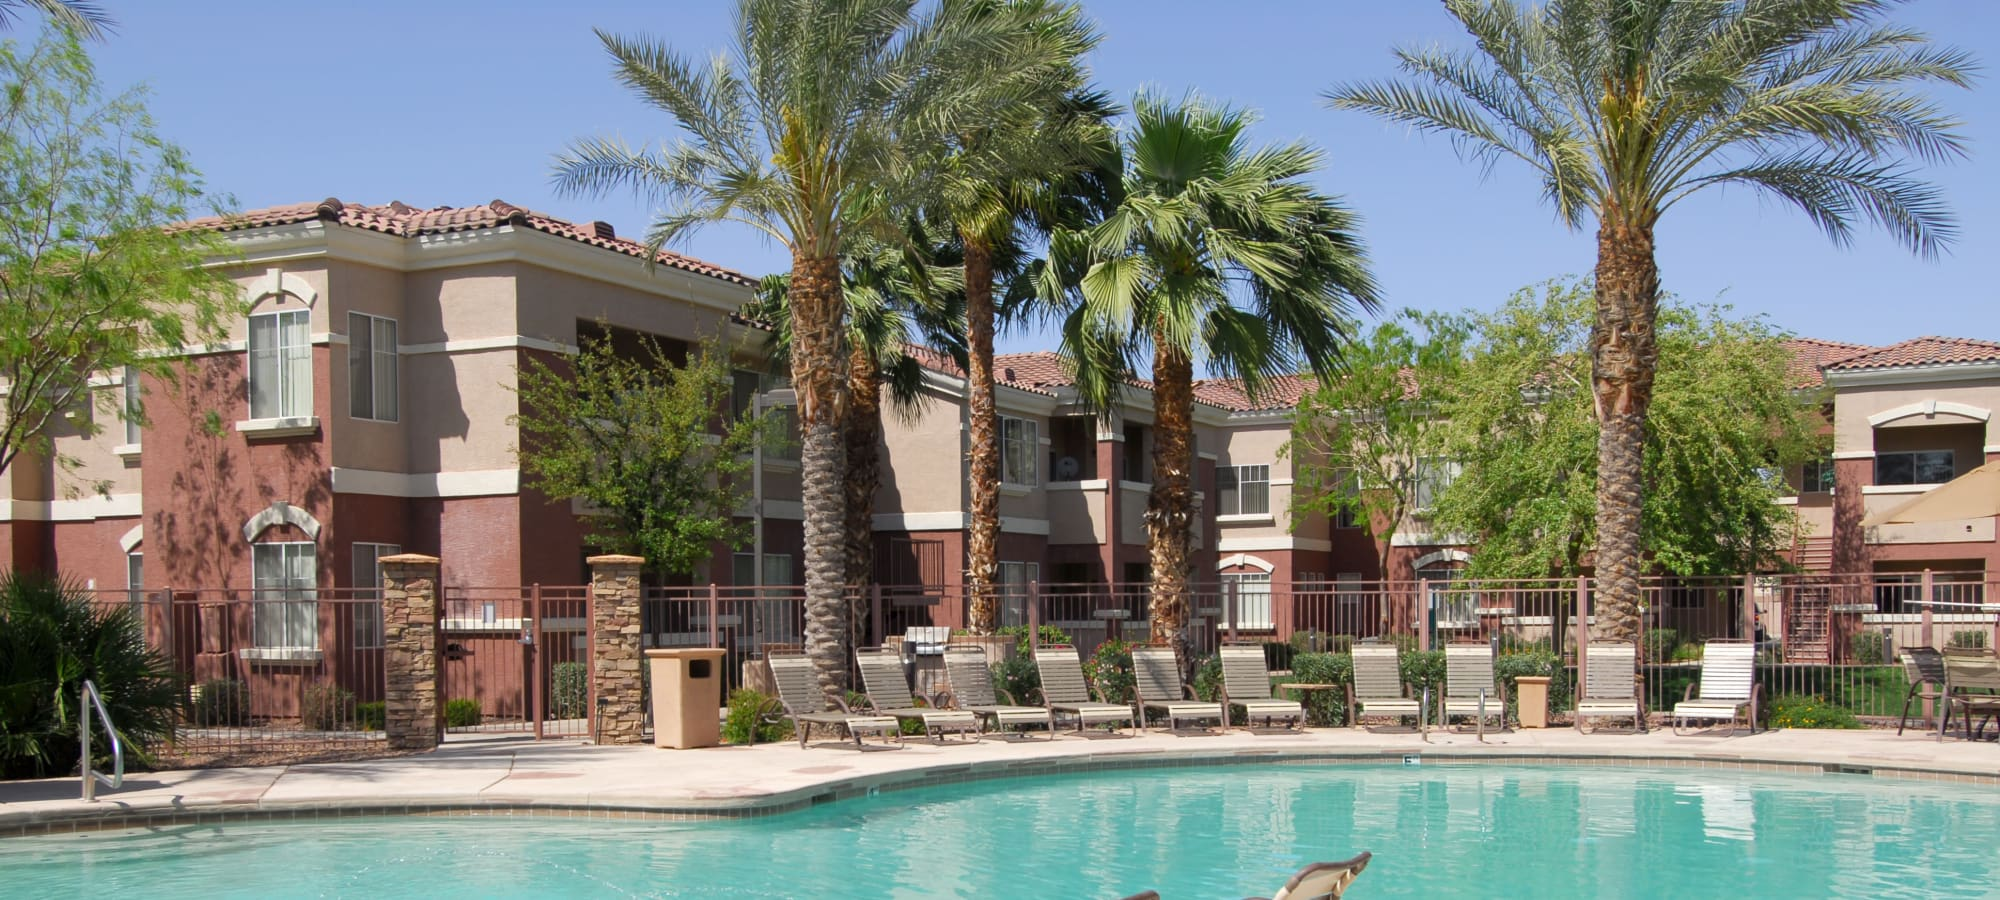 Lounge chairs lining the resort-style swimming pool at Remington Ranch in Litchfield Park, Arizona